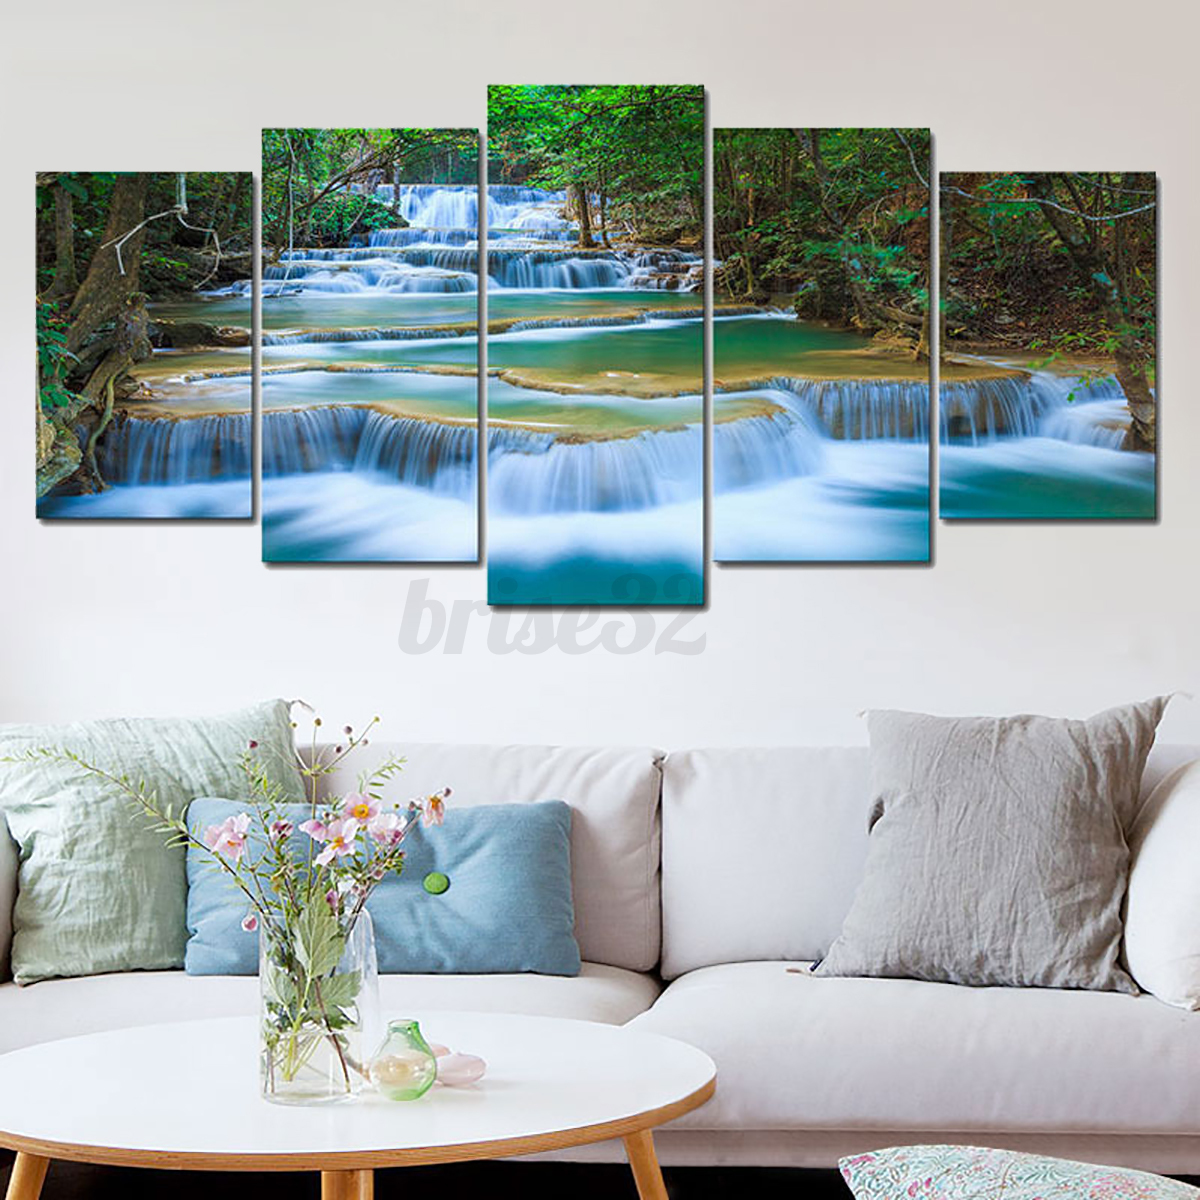 5pcs canvas print painting wall picture modern home art decor framed. Black Bedroom Furniture Sets. Home Design Ideas